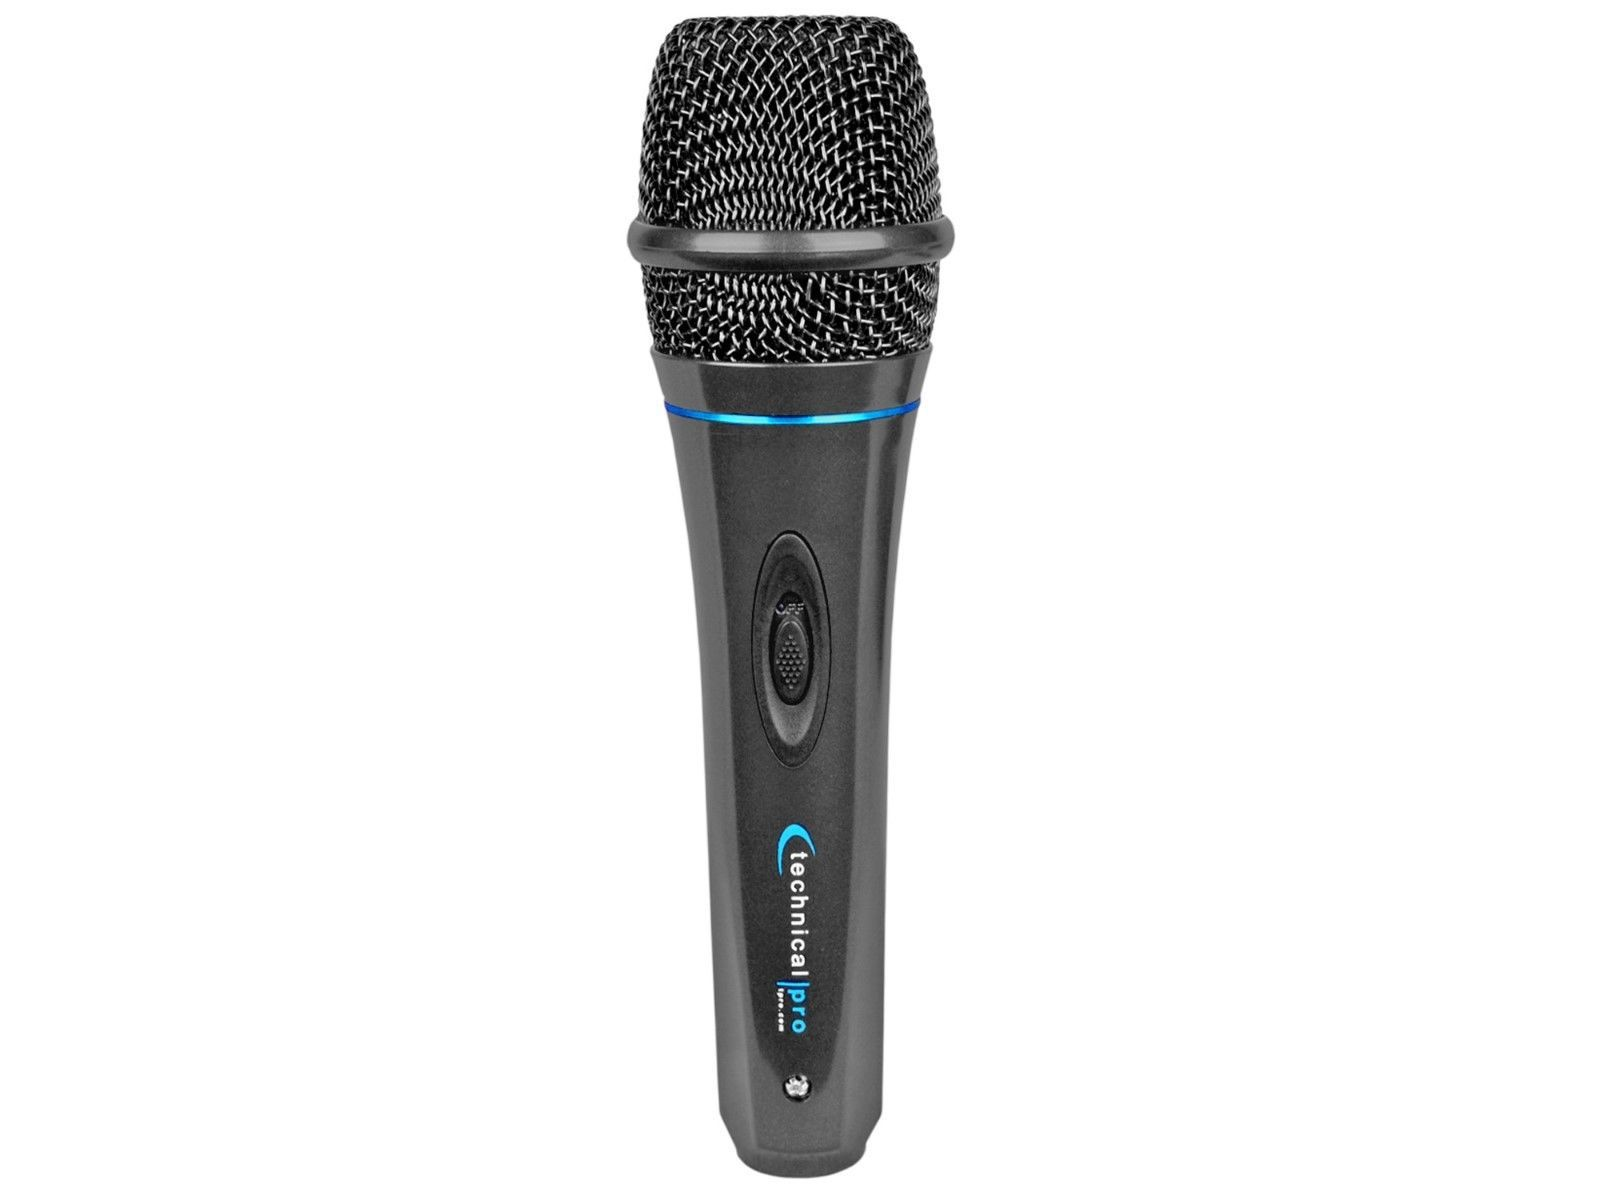 Technical Pro Wired Microphone with Digital Processing(MK75)10ft. cable included